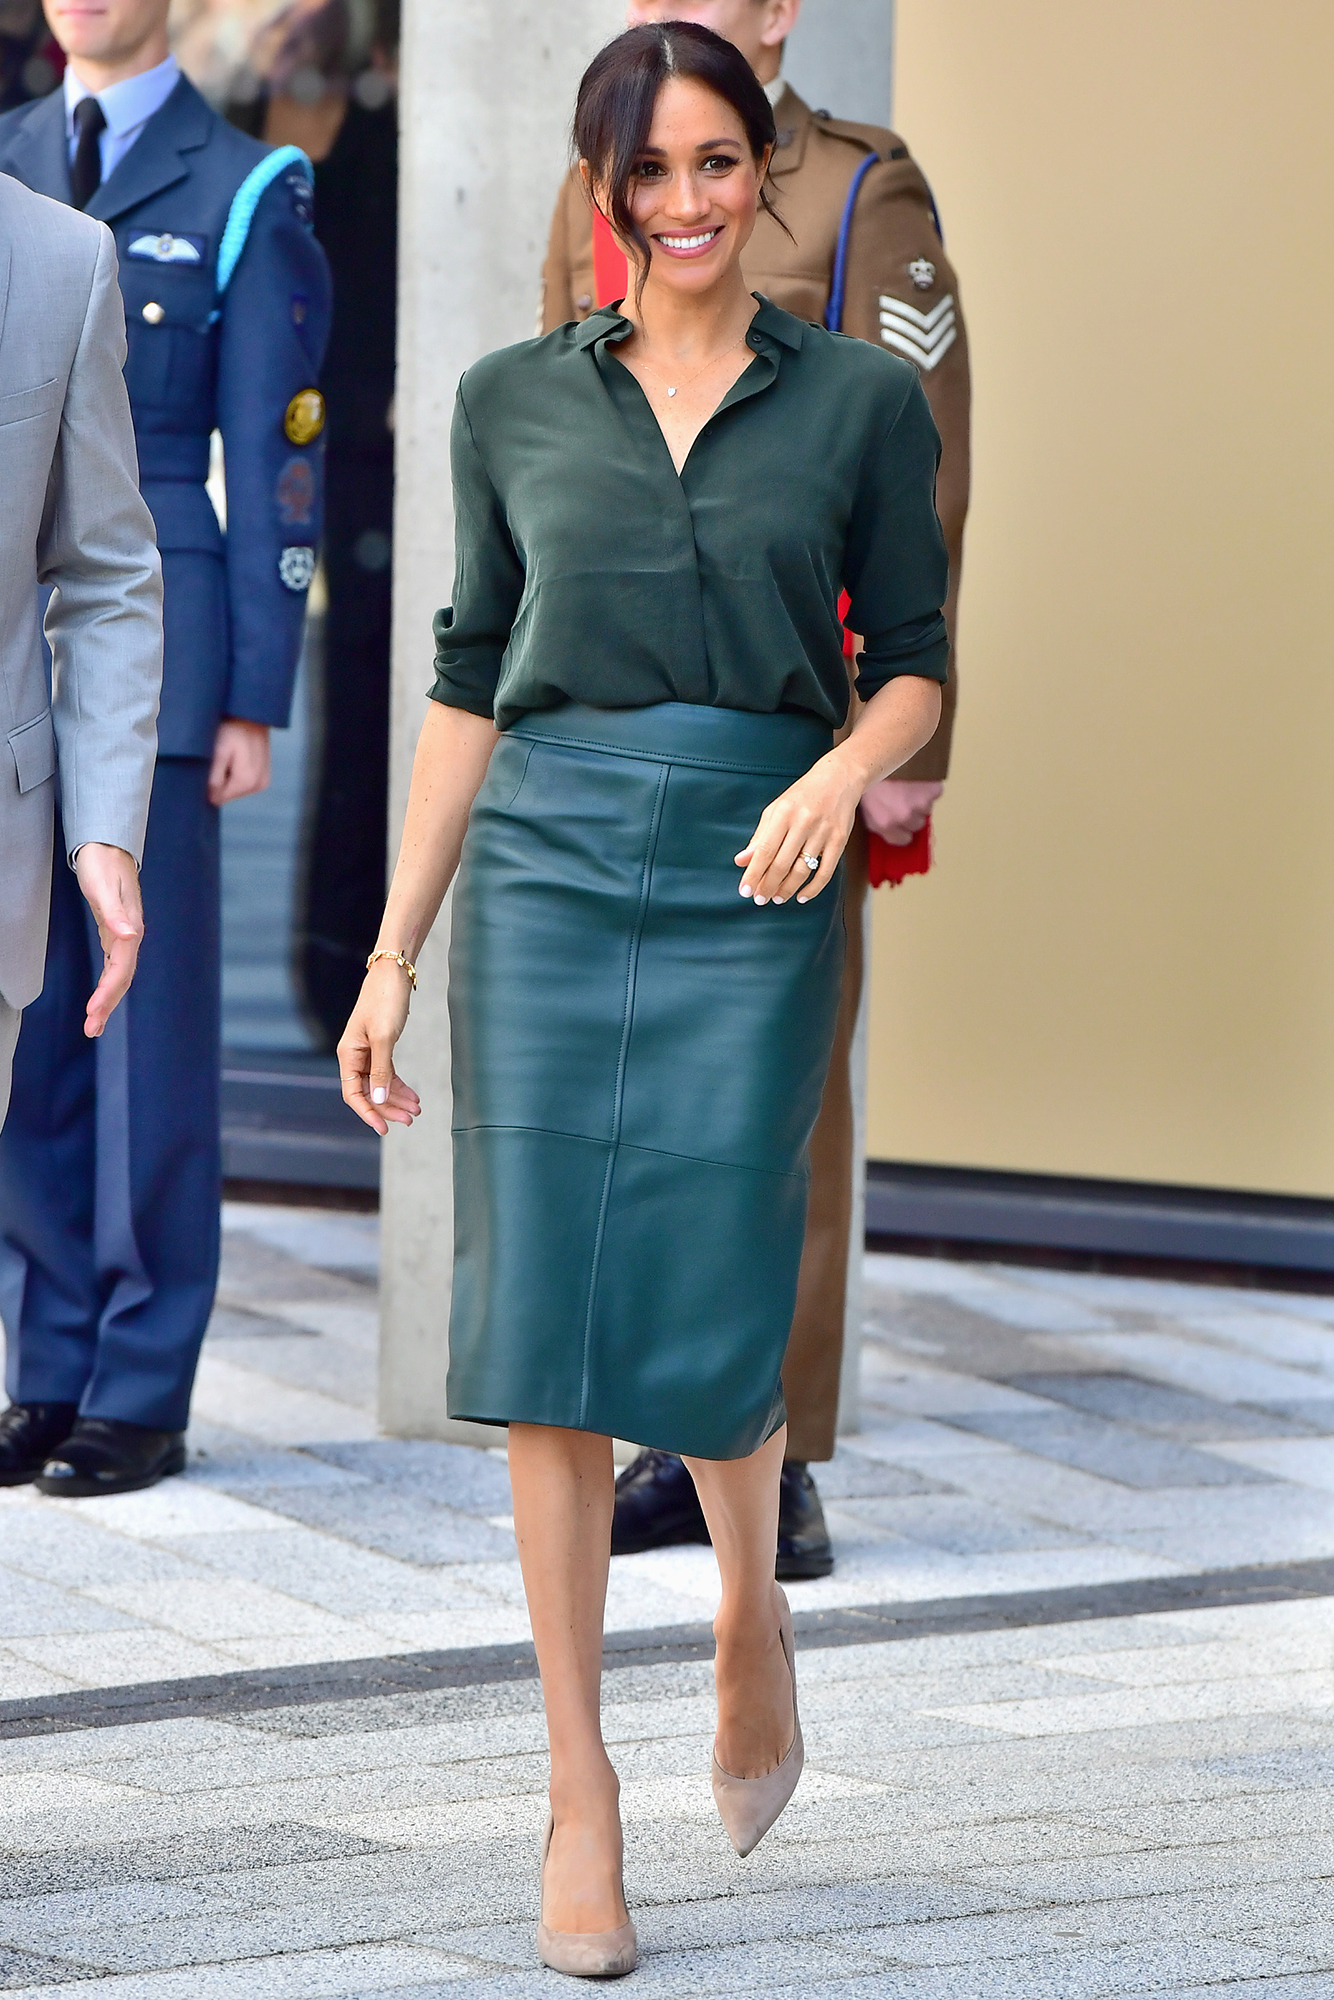 """Everything Duchess Meghan Has Said About Her Diet and Fitness Tricks - """"I used to run all the time, but I typically get picked up for work at 4:15 in the morning on a Monday, so there isn't much time for jogging and I would rather have that extra hour of sleep,"""" Meghan (here in the U.K. on October 3, 2018) confessed while on Suits . After that, she said, she changed it up."""